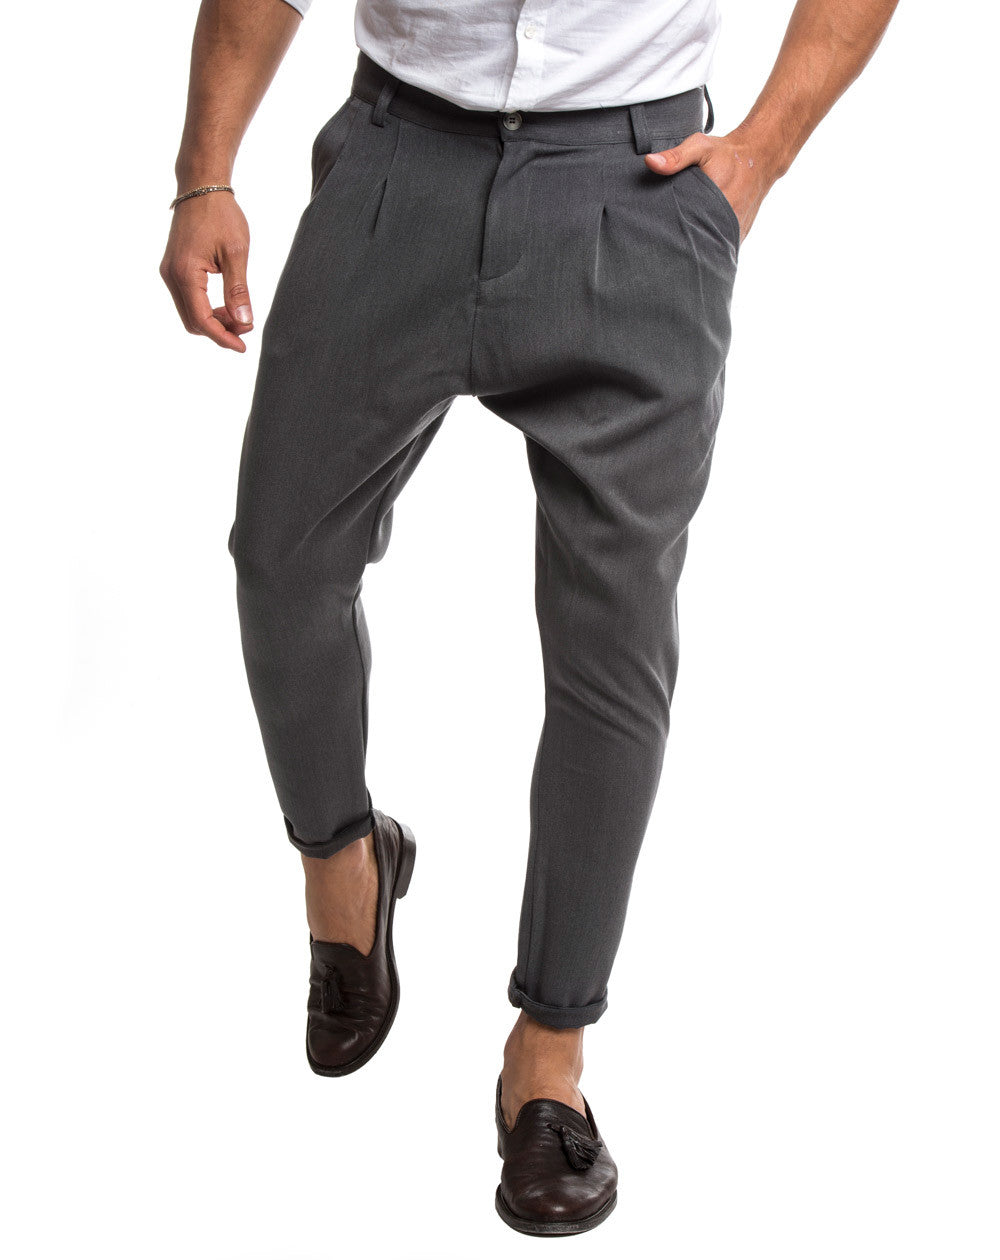 MEN'S CLOTHING | GREY DOUBLE PLEAT PANTS | TAPERED FIT | DROPPED CROTCH |  COTTON |